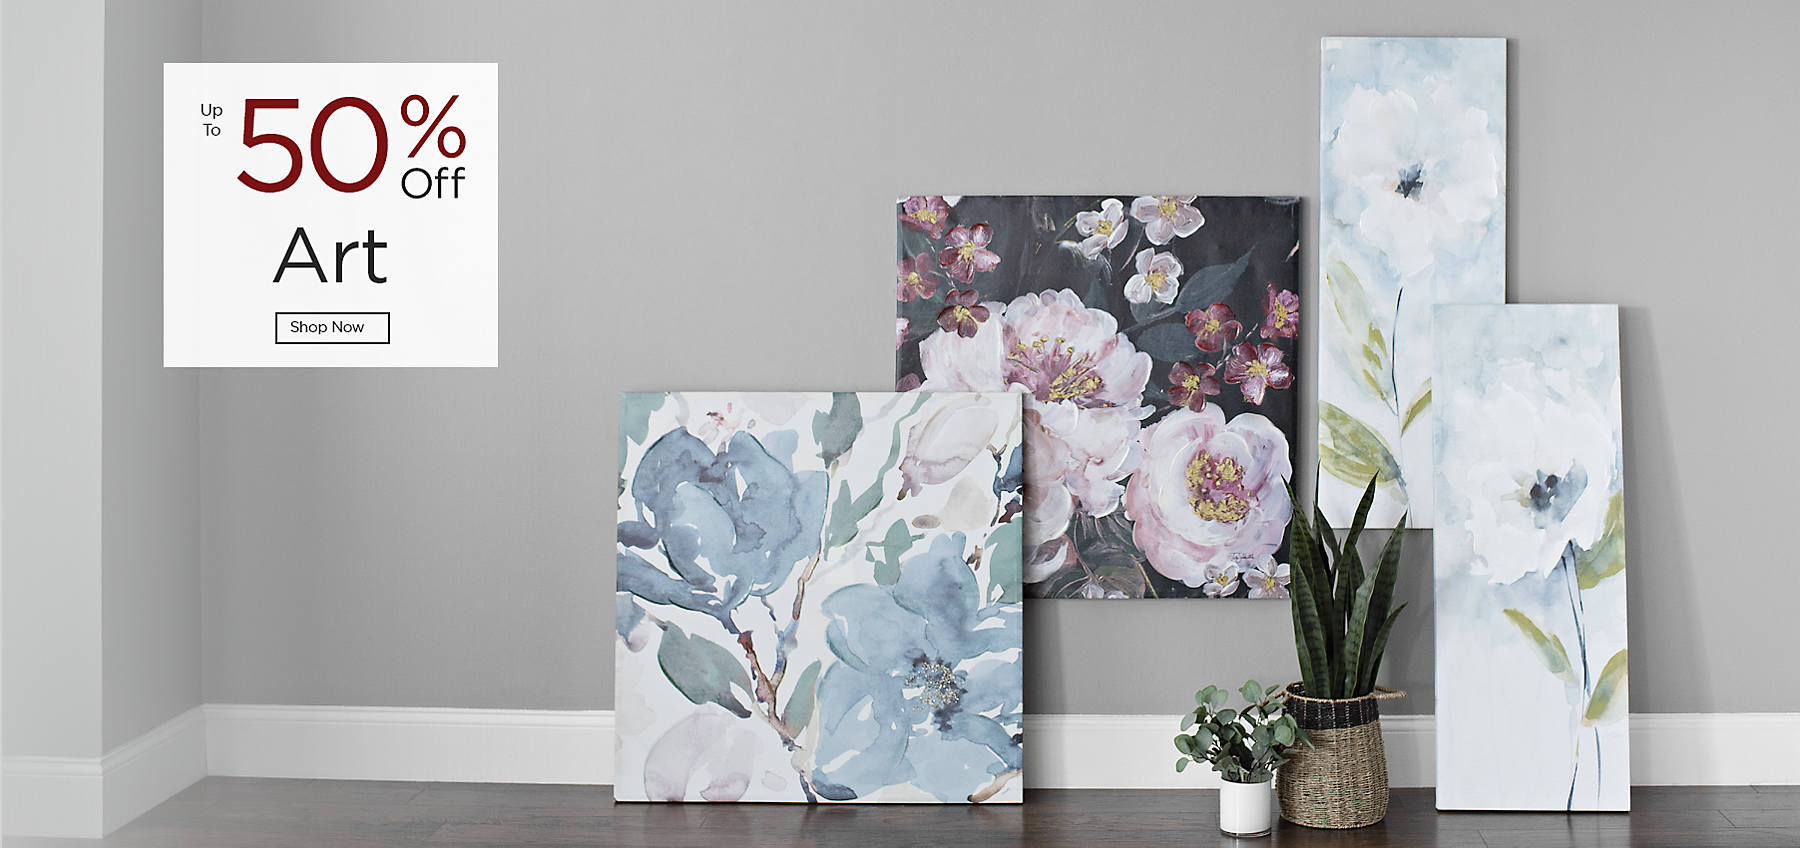 Art Up to 50% Off Shop Now